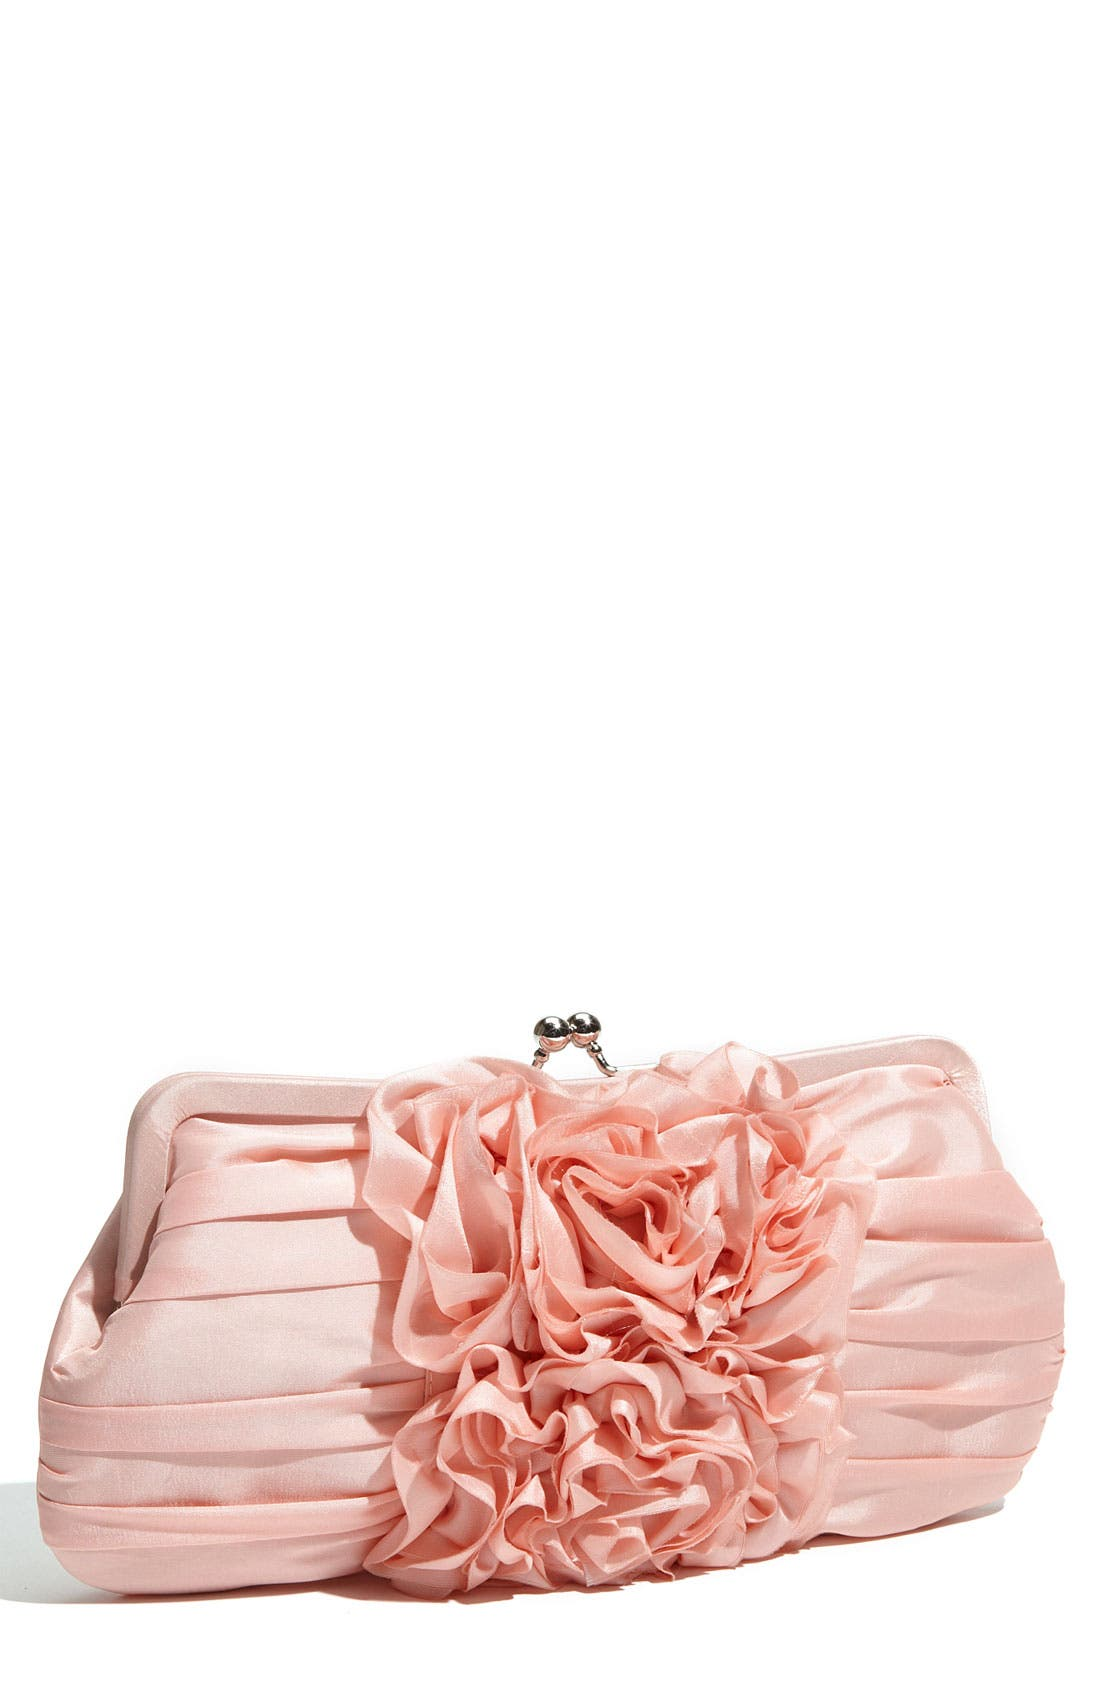 Main Image - Expressions NYC 'Silk Roses' Kisslock Frame Clutch